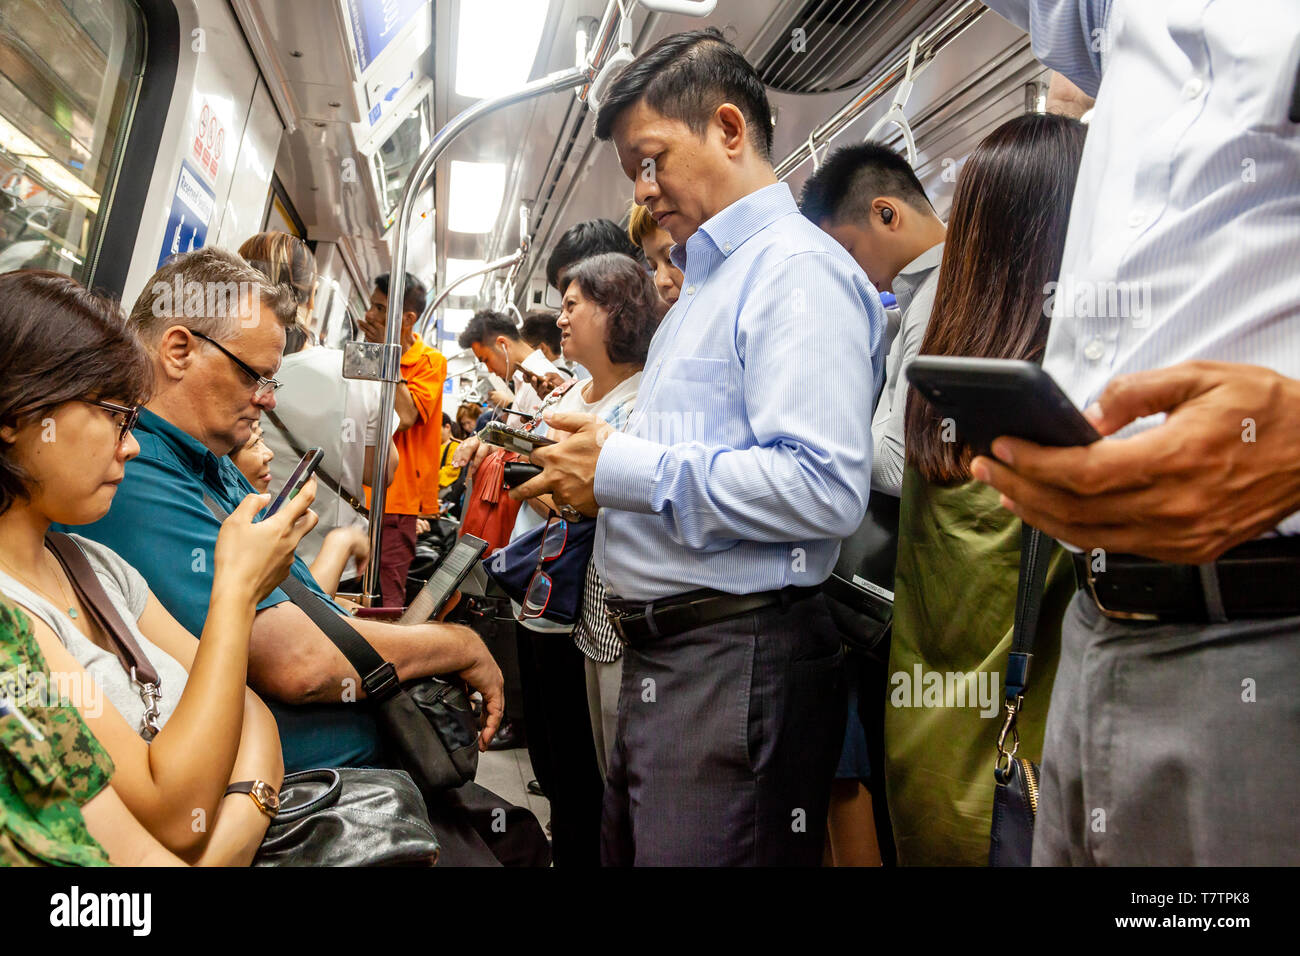 People Looking At Their Smartphones On The MRT, Singapore, South East Asia - Stock Image